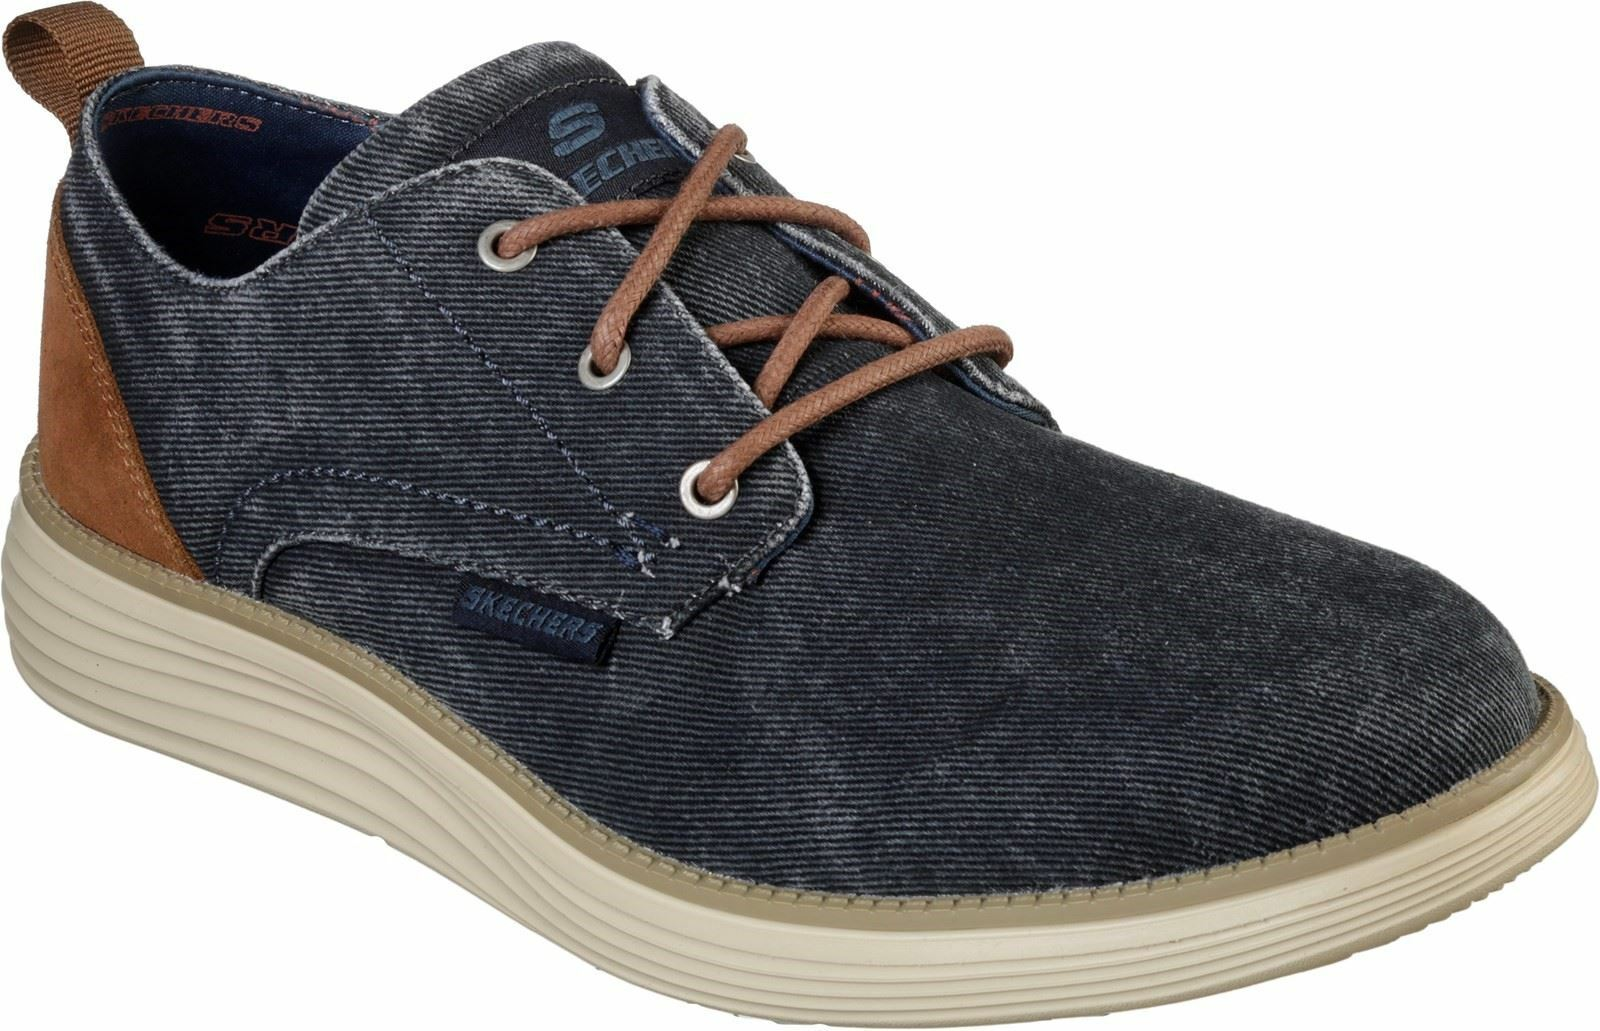 Skechers Status 2.0 - Pexton Low Profile Canvas Lace Up Shoe Mens Sports in Navy